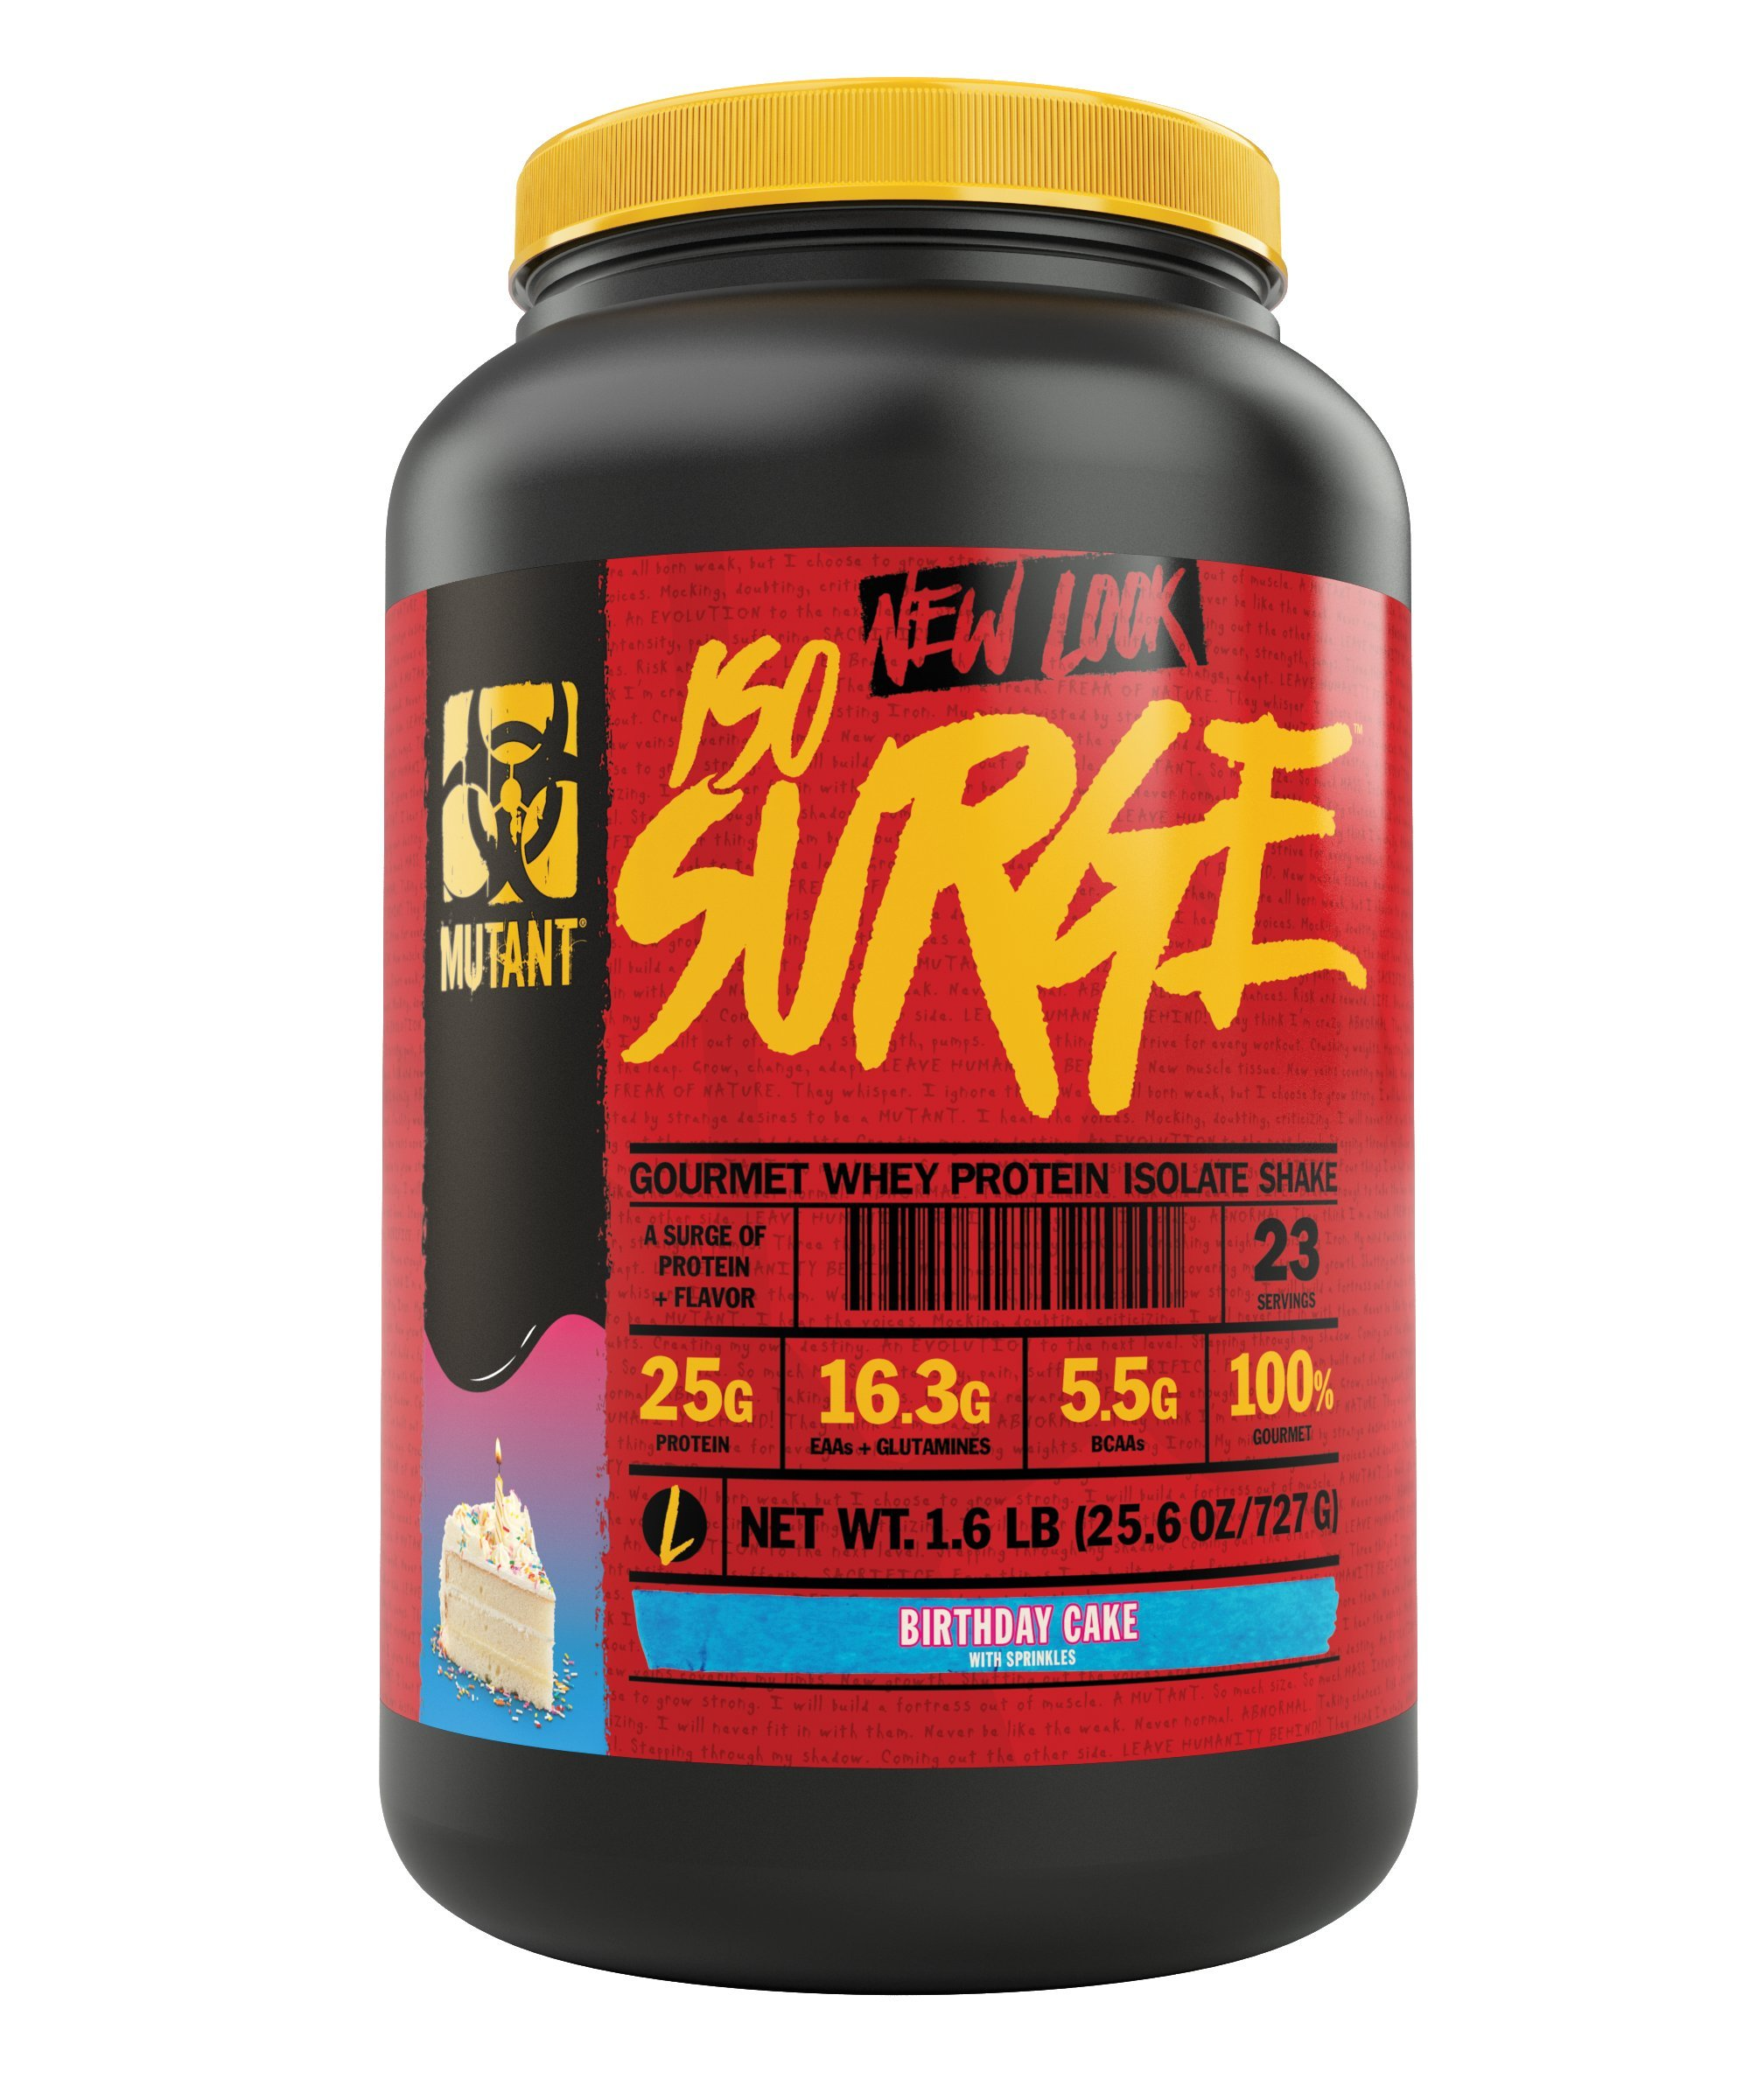 Mutant ISO Surge Whey Protein Powder Acts FAST to Help Recover, Build Muscle, Bulk and Strength, Uses Only High Quality Ingredients, 1.6 lb - Birthday Cake by Mutant